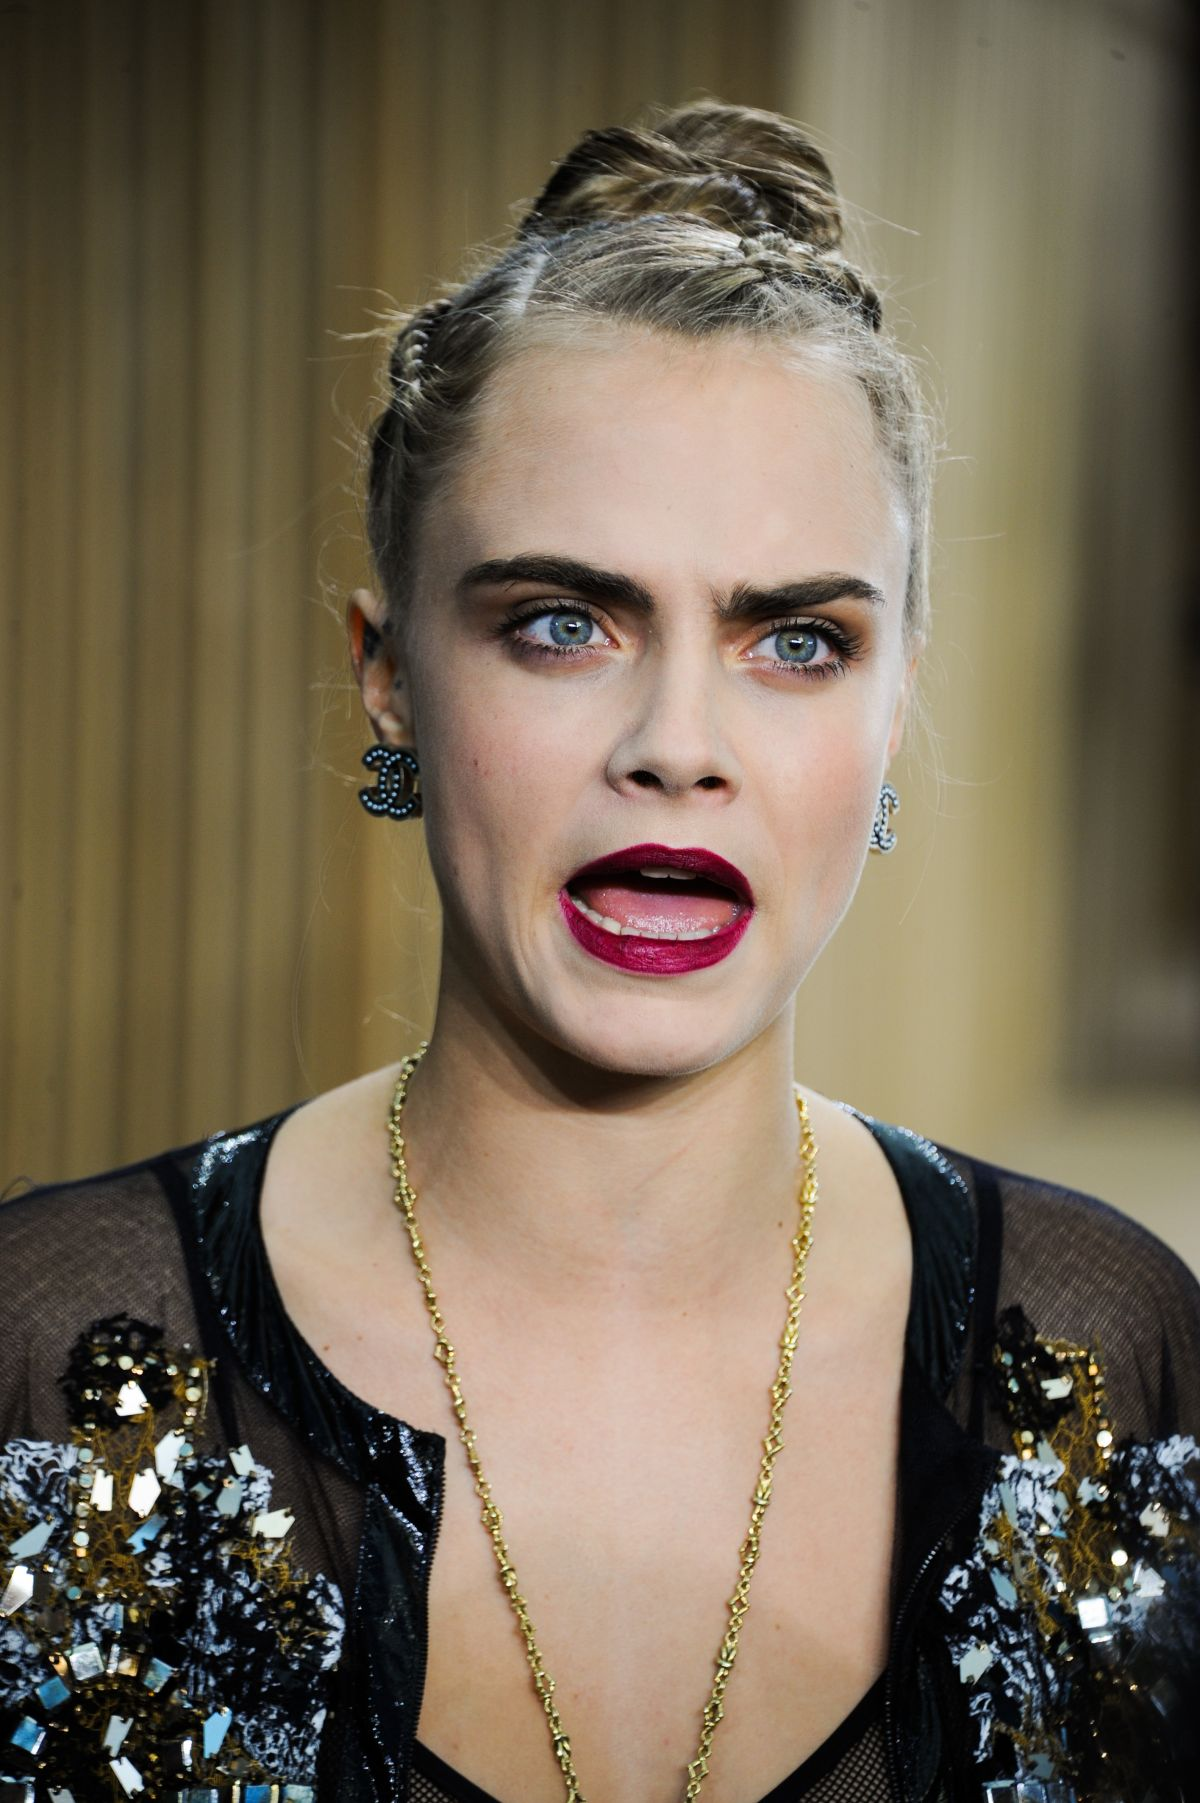 CARA DELEVINGNE at Chanel Haute Couture Spring/Summer 2016 ...